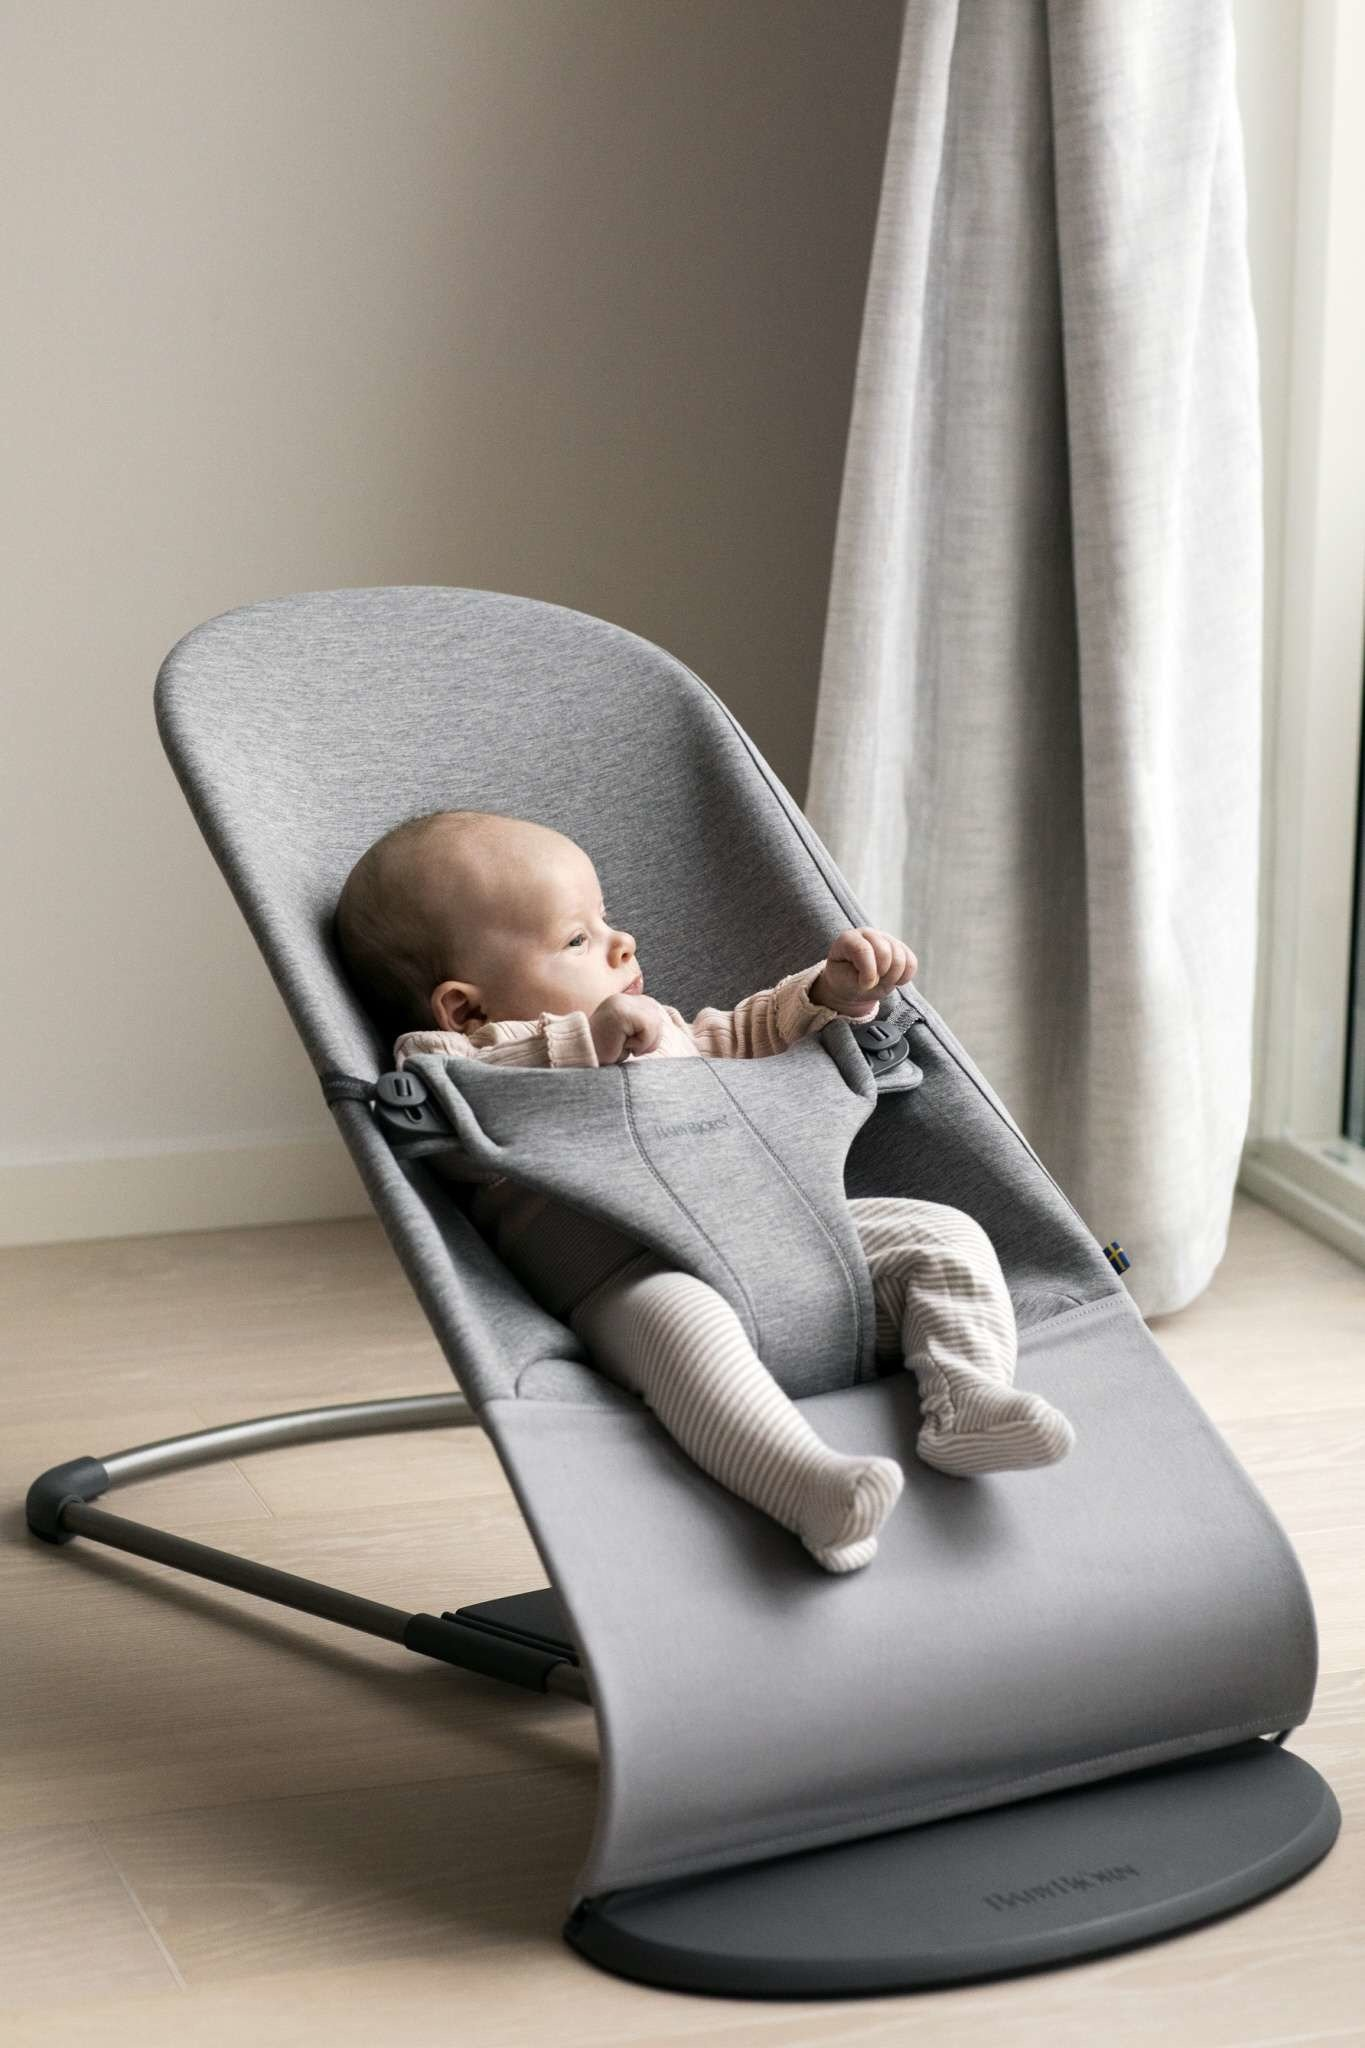 BABYBJÖRN - Bouncer Bliss - Light grey, 3D Jersey